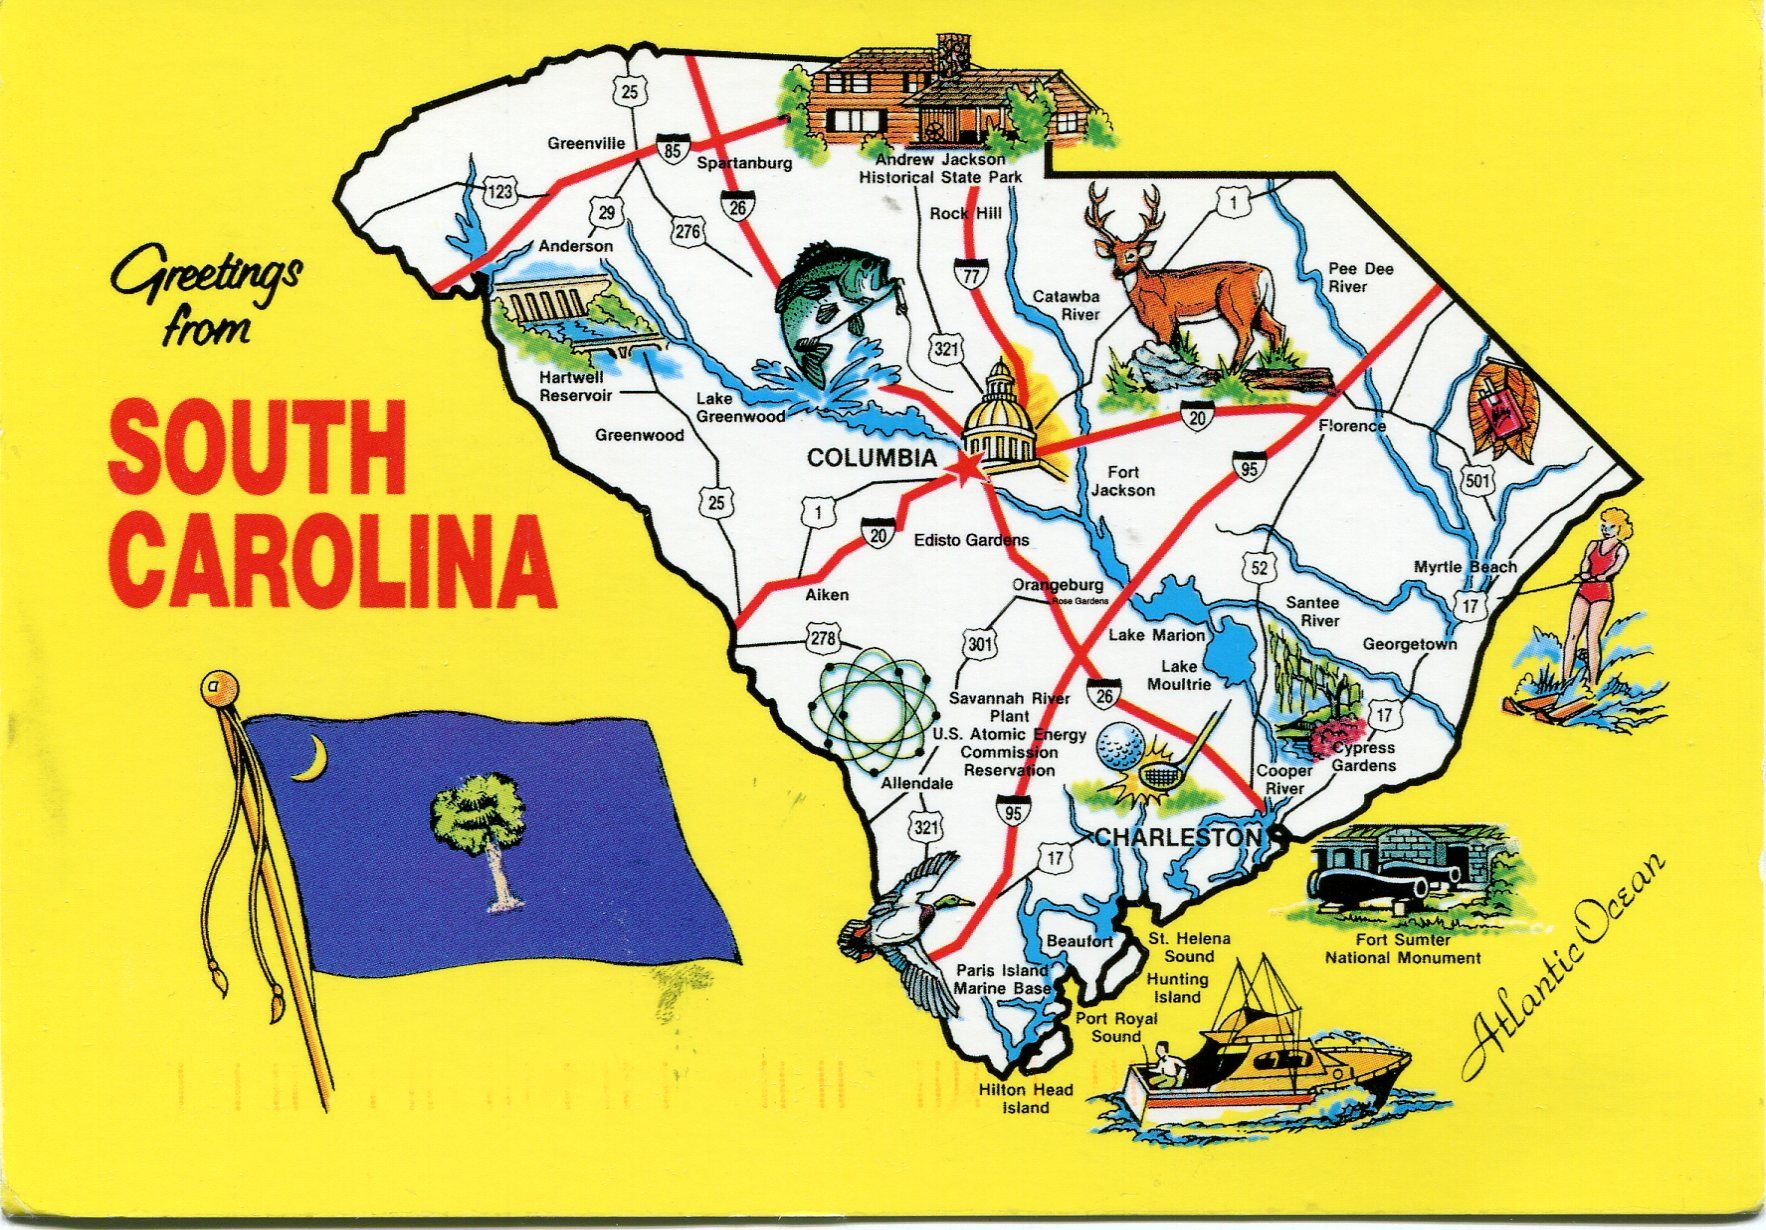 South Carolina Map Carolina usa and Travel posters